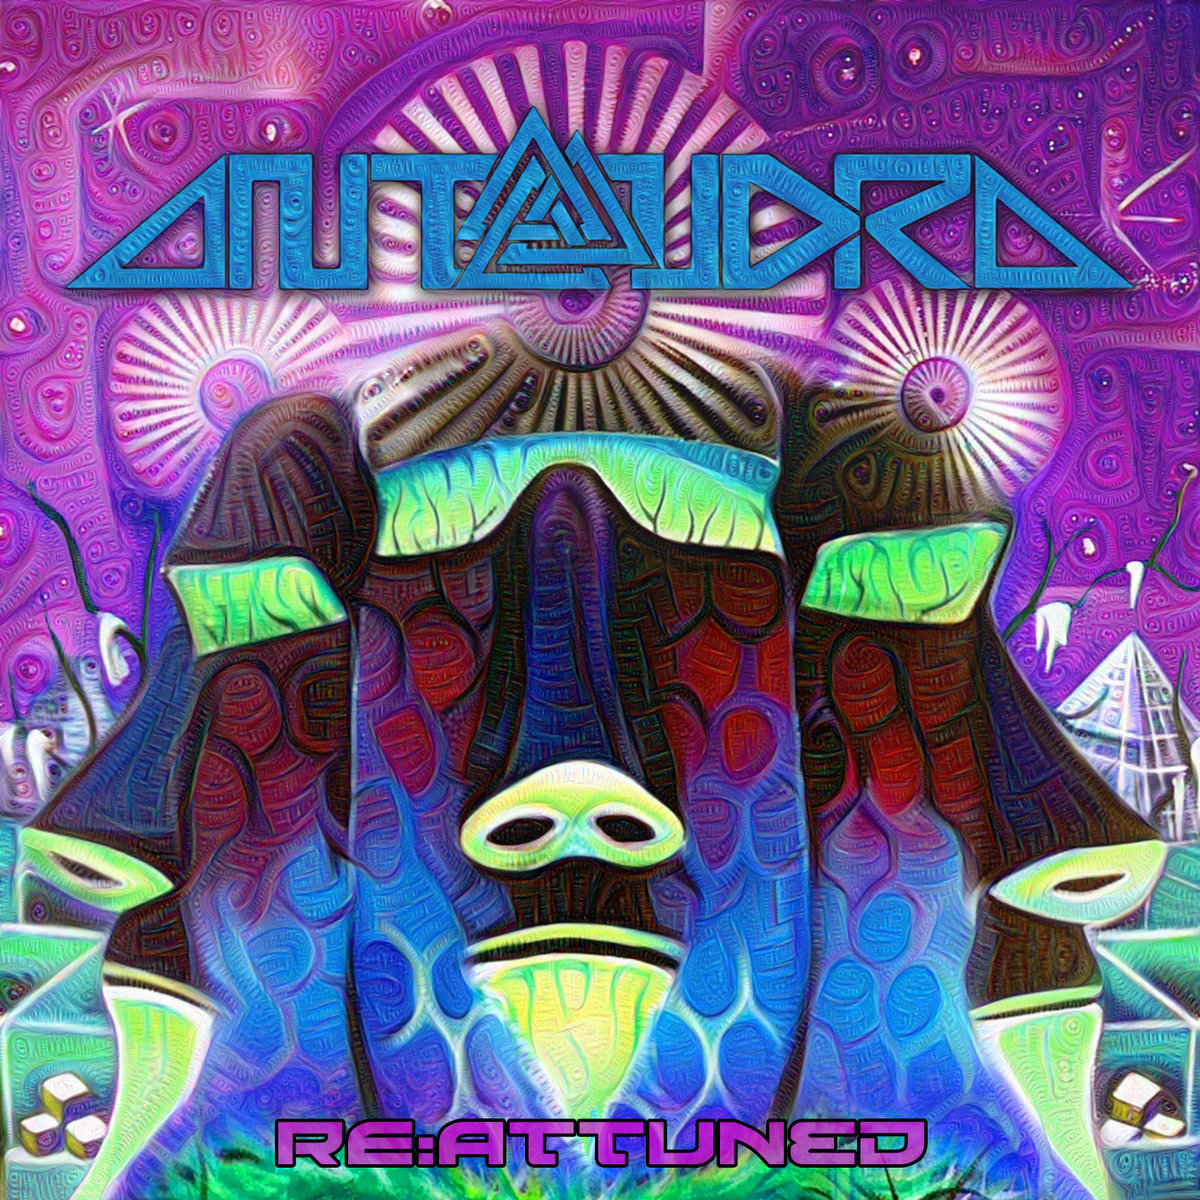 Antandra - Dazed and [A]mused (Stratosphere Remix) @ 'RE:ATTUNED' album (ambient, downtempo)